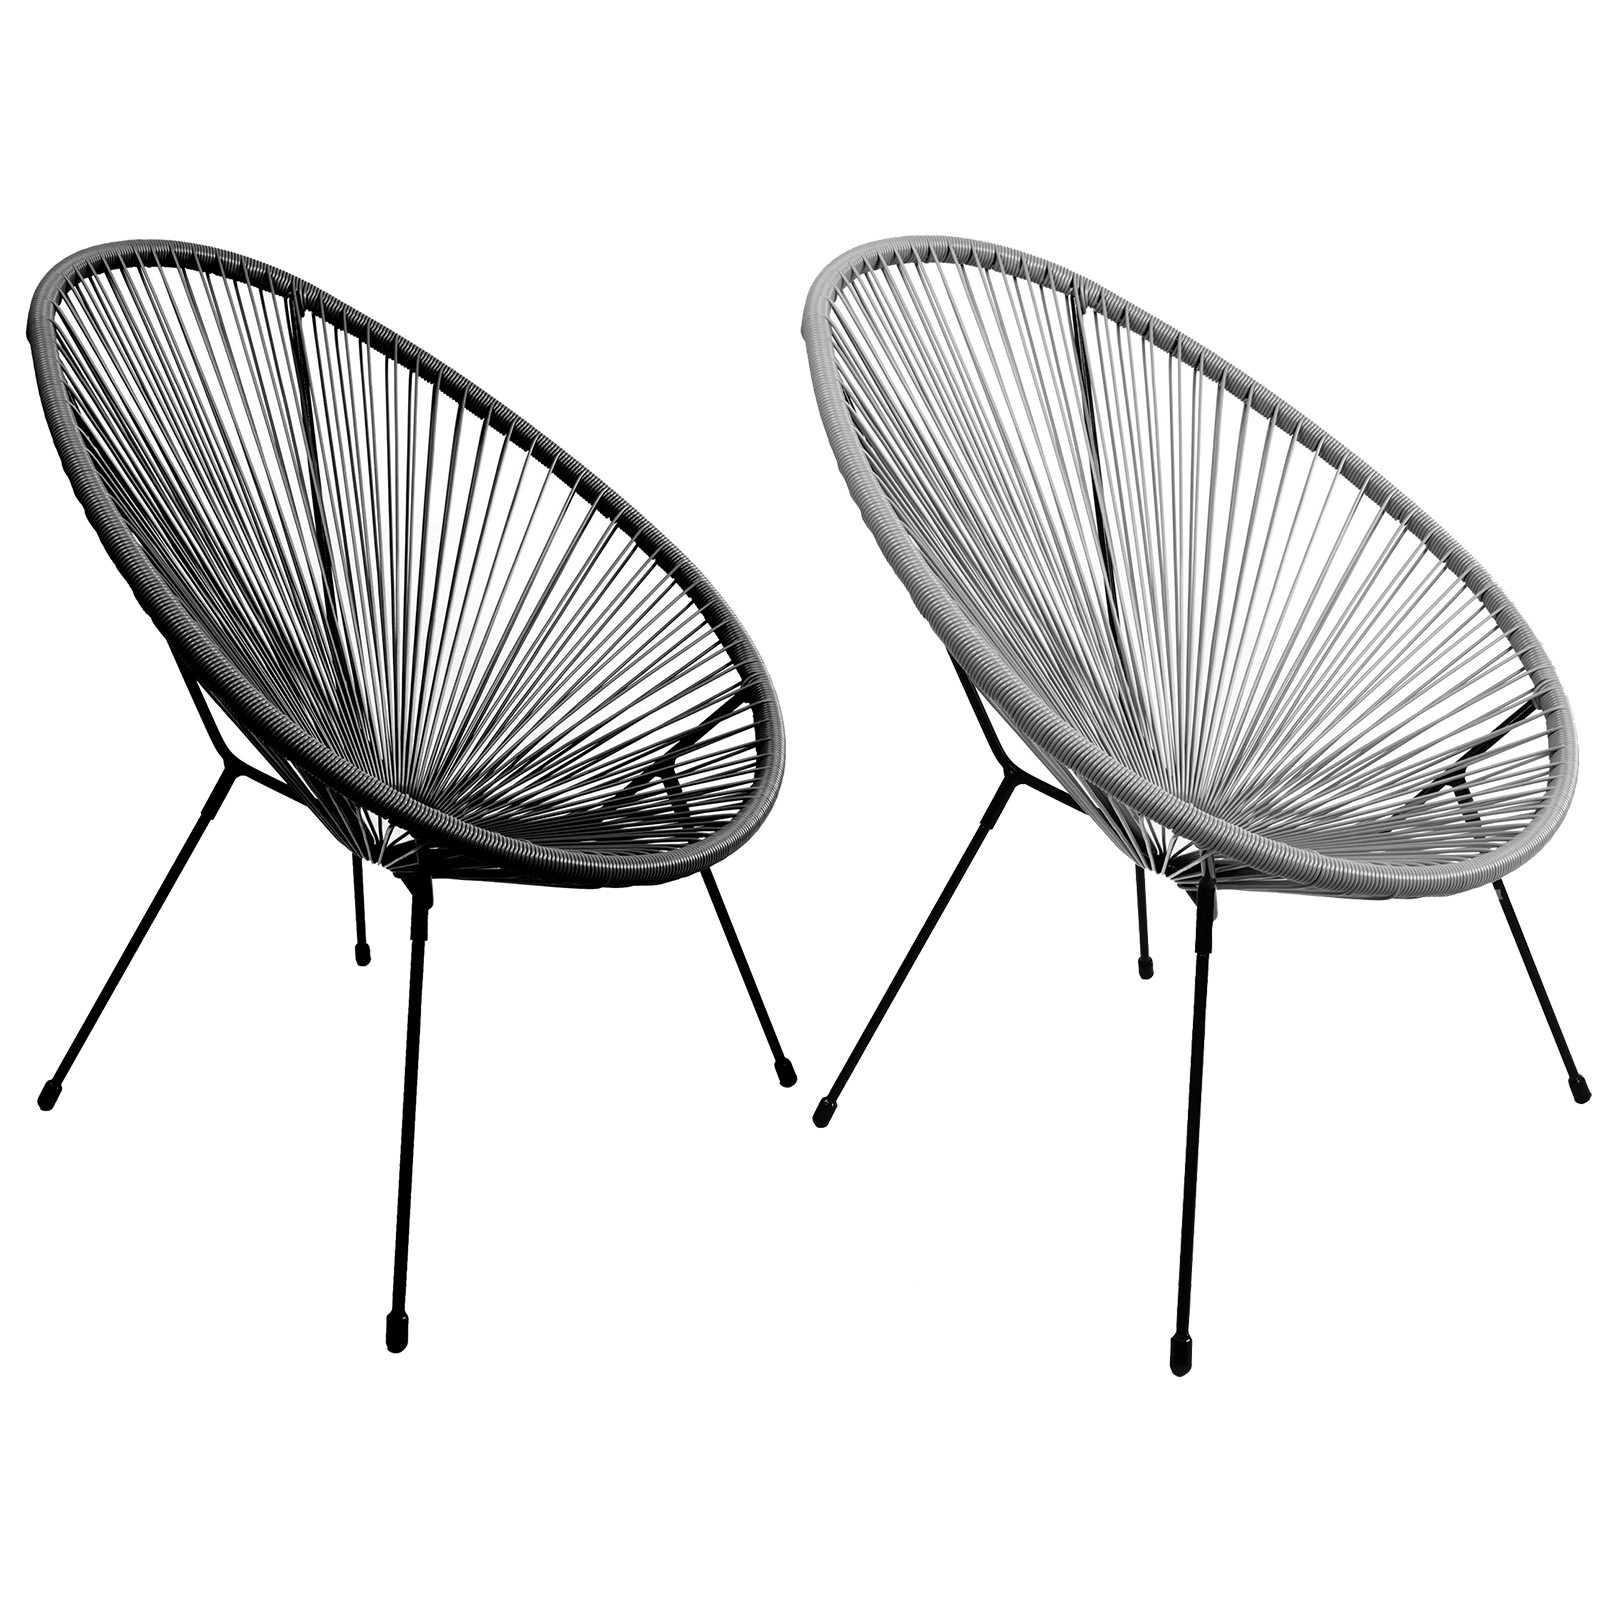 Charmant Details About RATTAN STRING CHAIRS MOON EGG MODERN STYLISH FUNKY FURNITURE  INDOOR OUTDOOR NEW